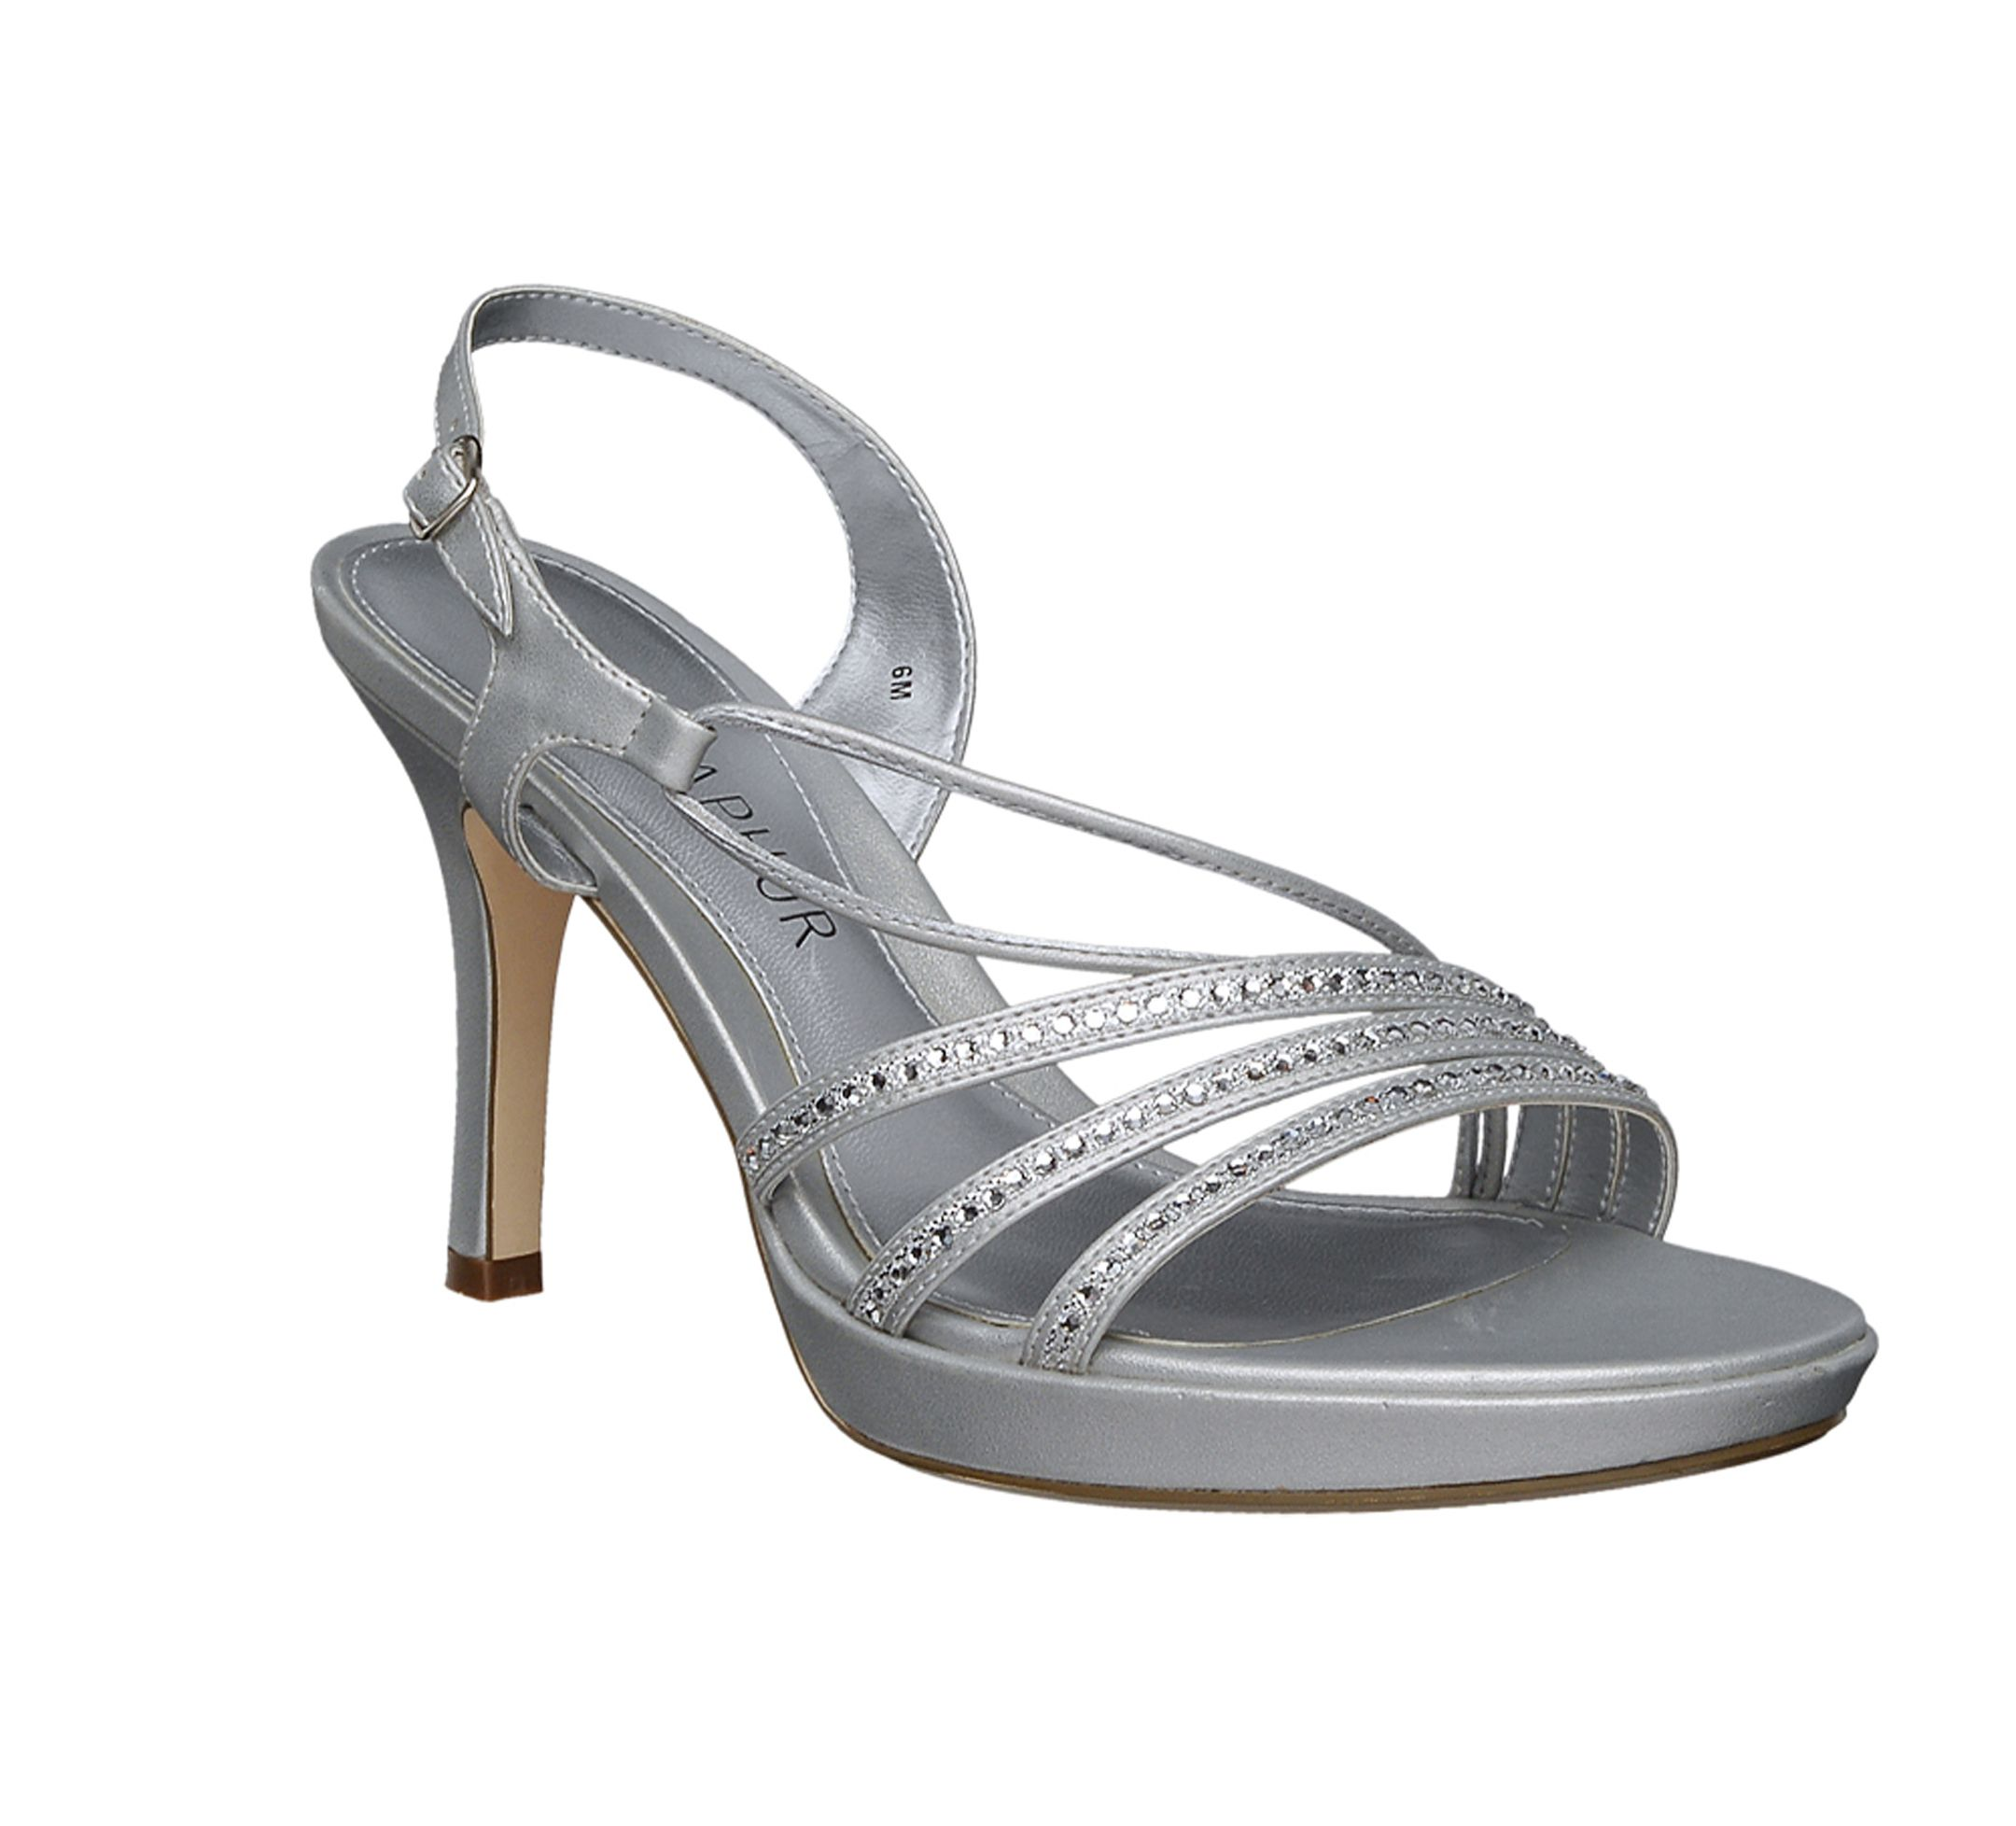 Metaphor  Women's Verena Dress Shoe - Silver